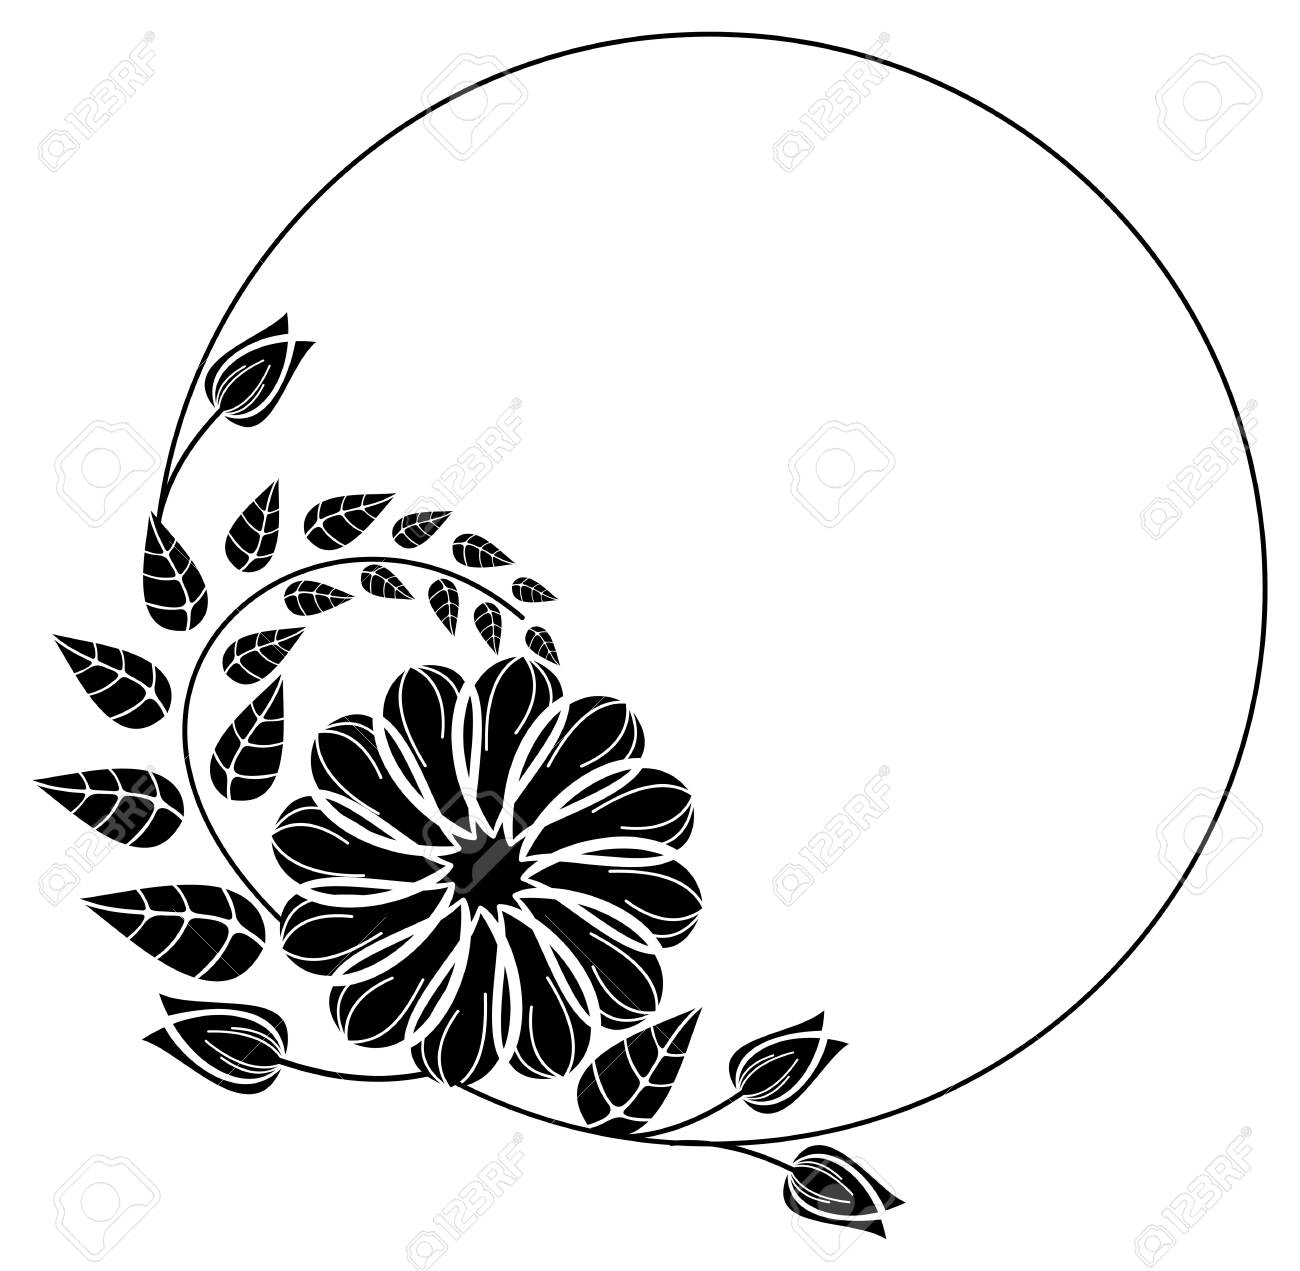 Round Black And White Frame Outline Decorative Flowers Copy